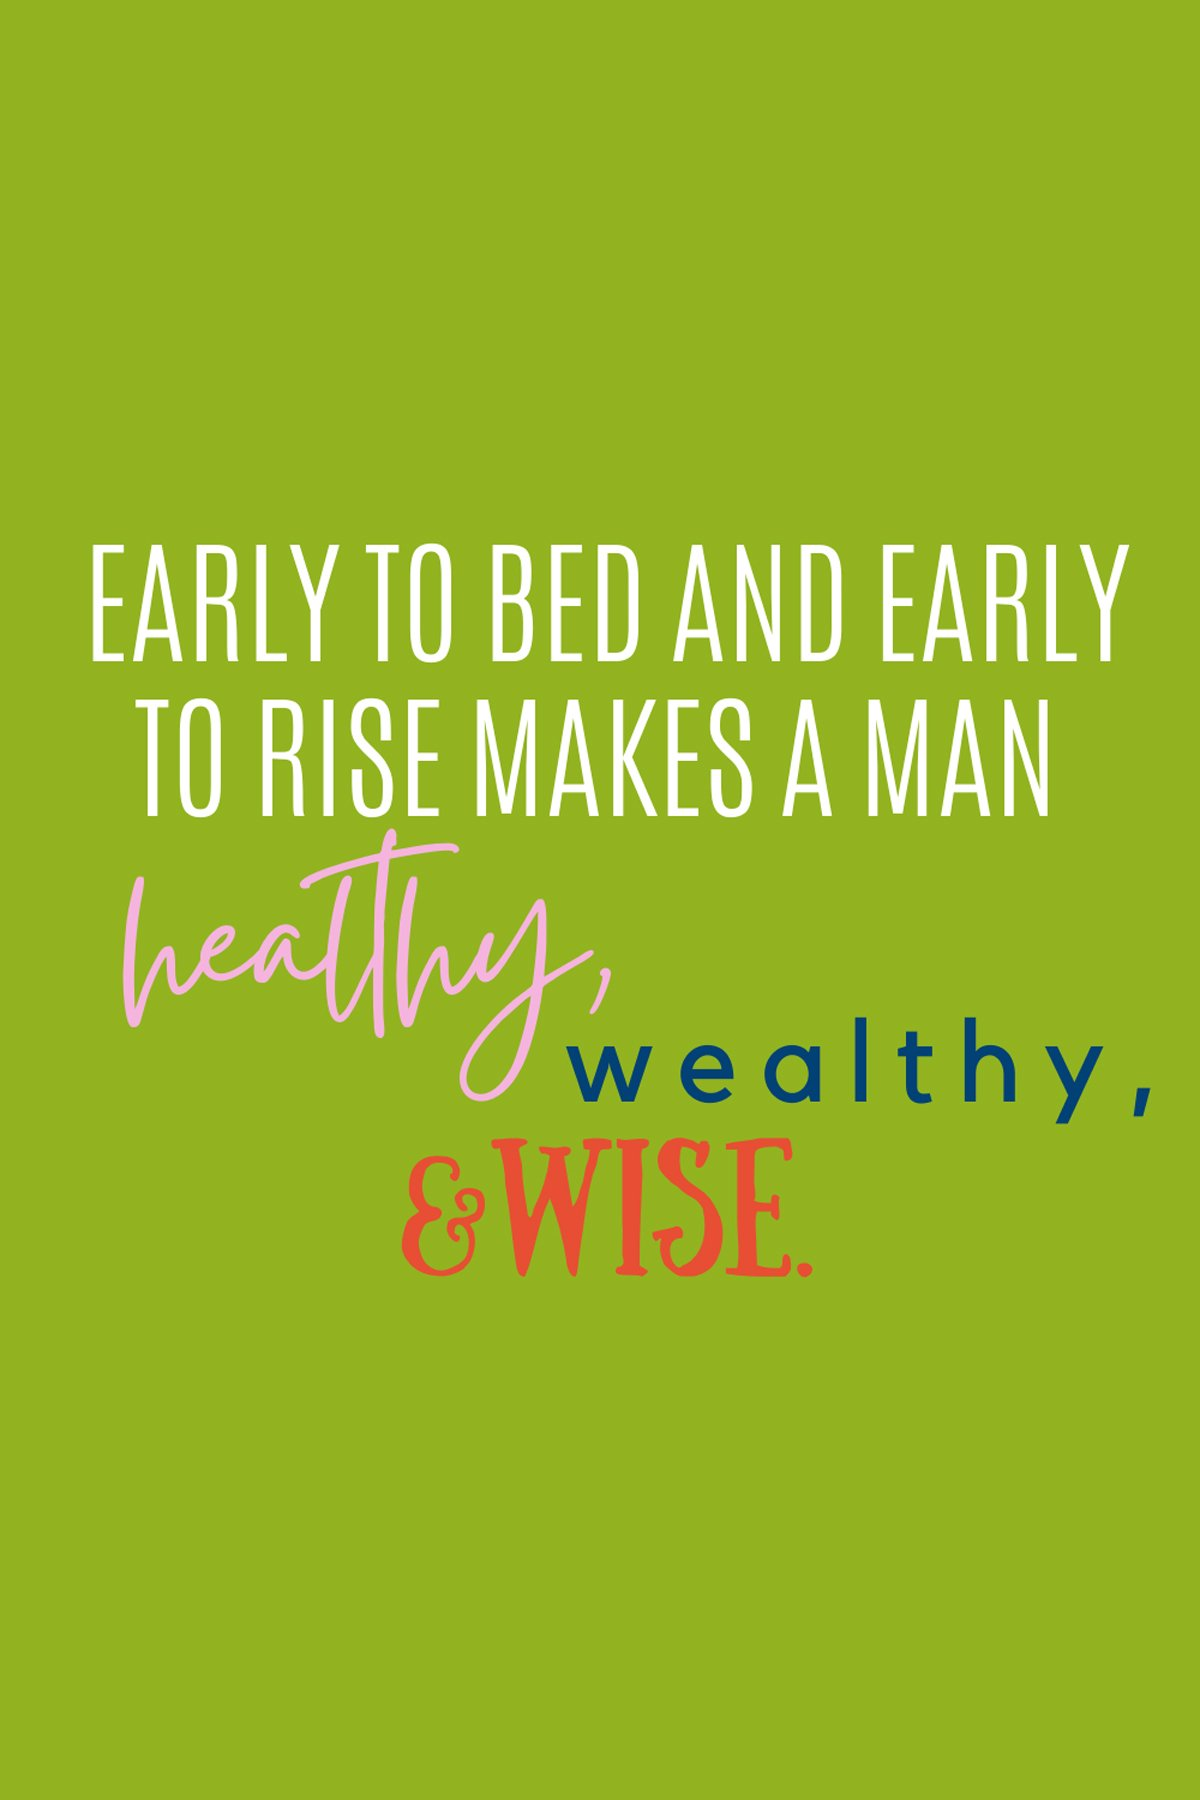 Early Riser Quote